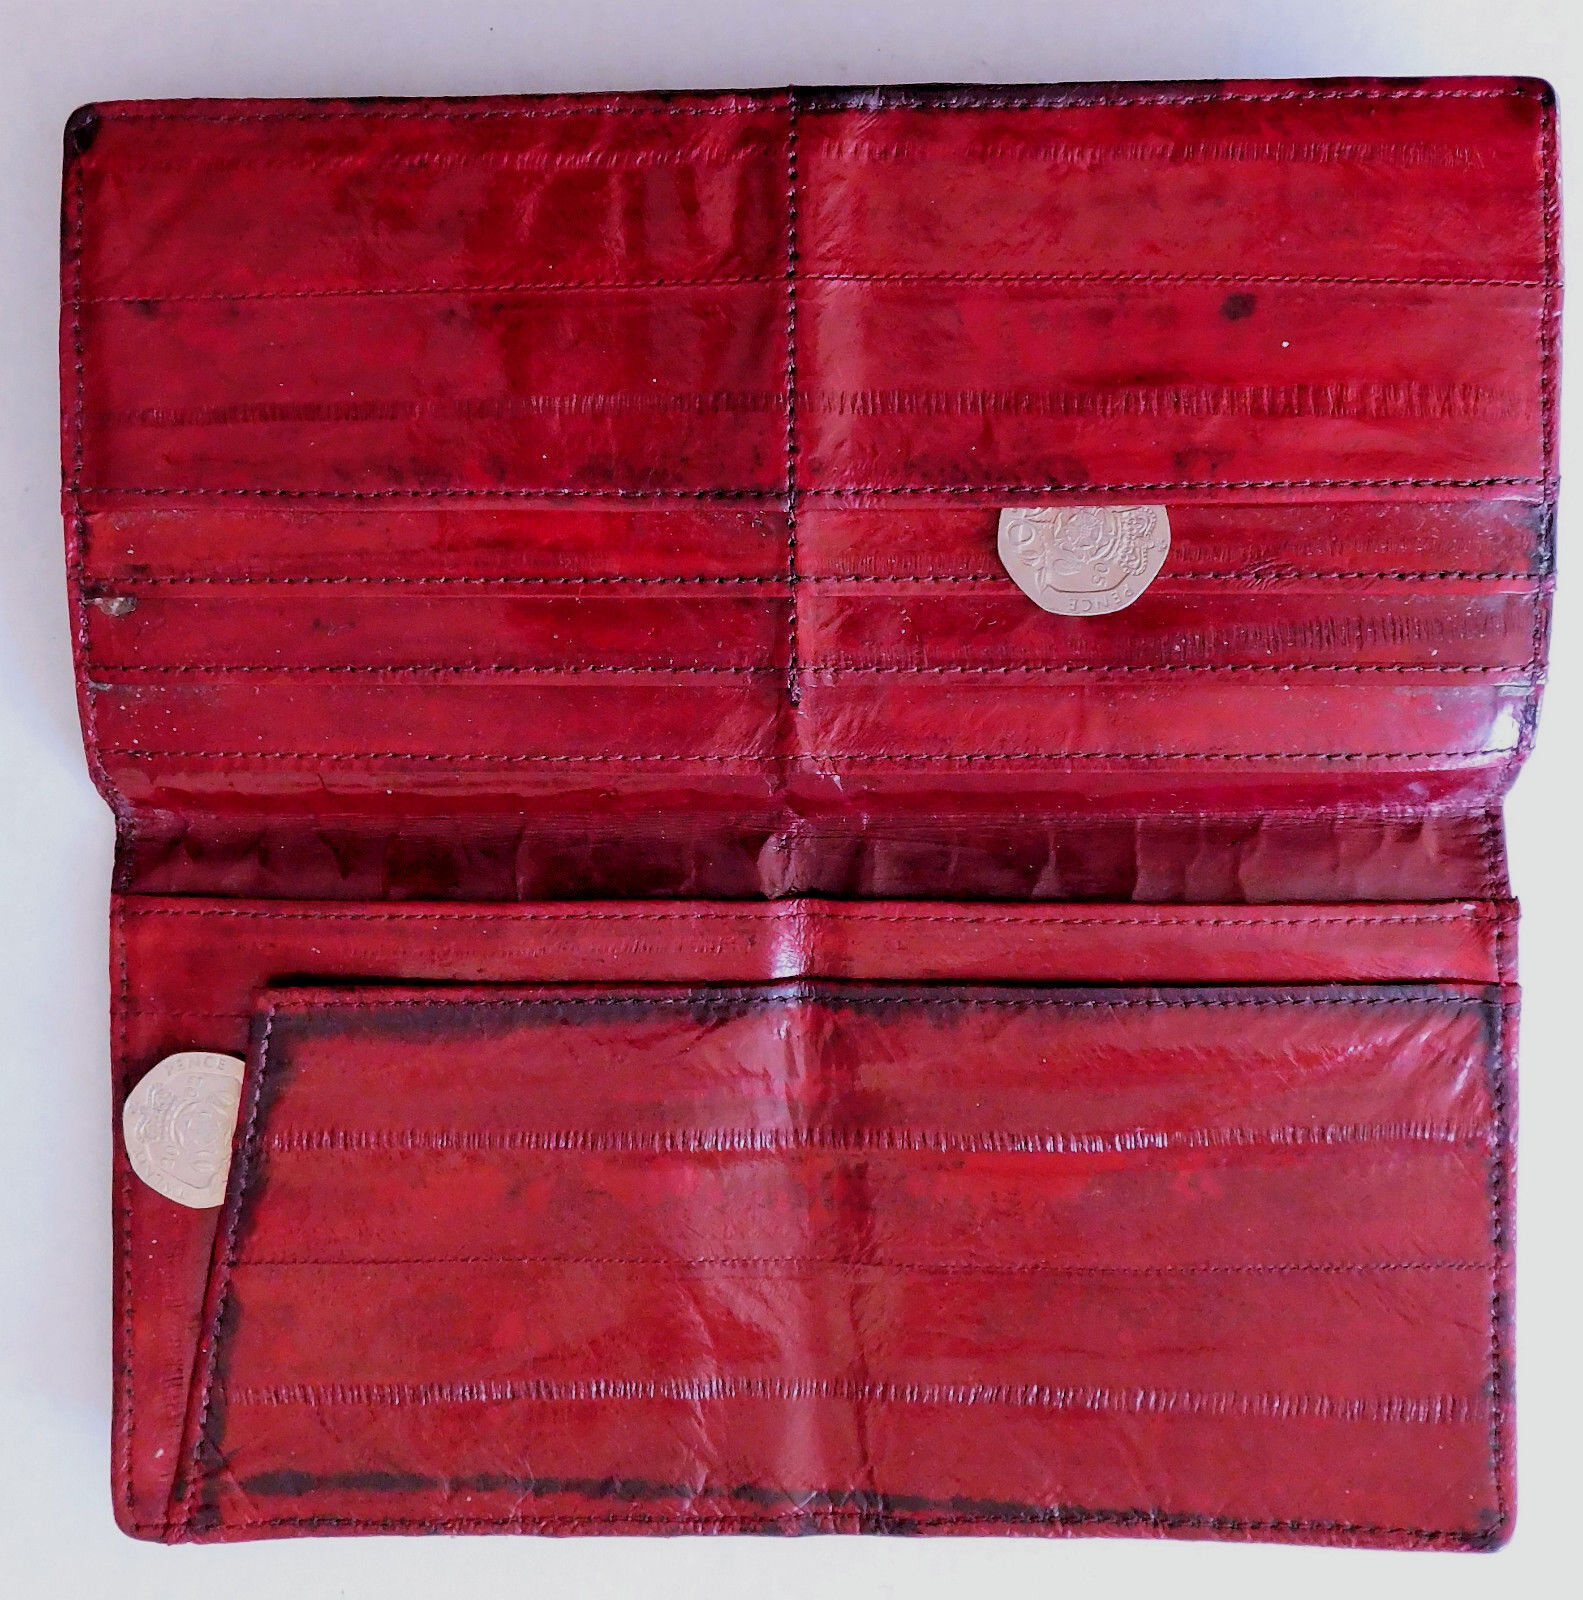 Vintage oxblood leather wallet credit card holder good quality